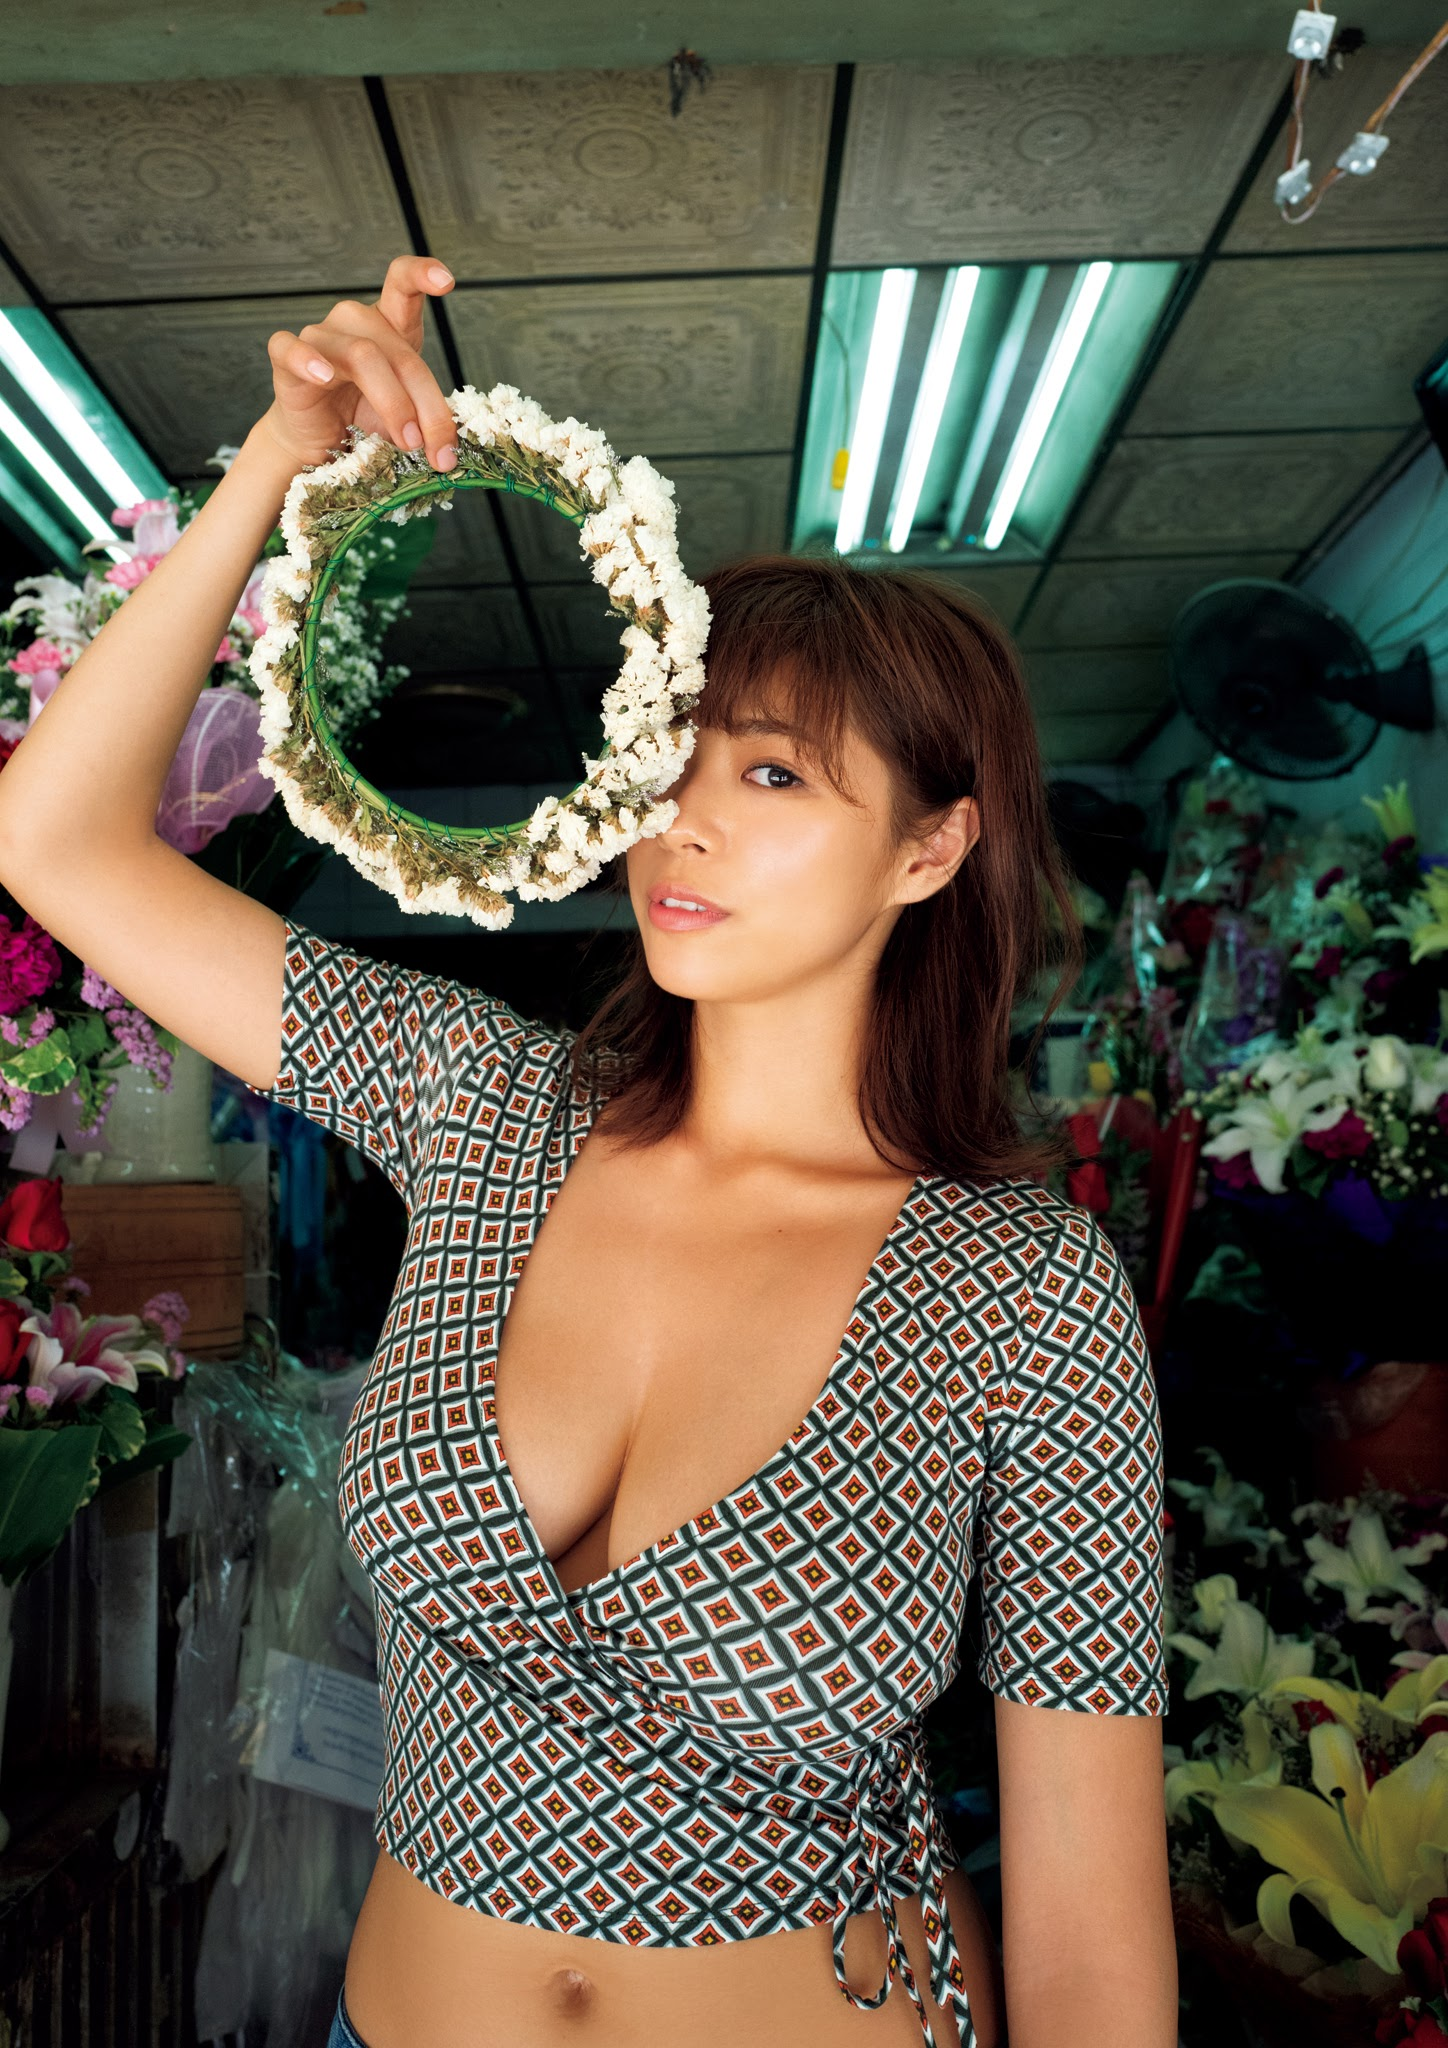 Super body of H cup Minami Wachi 2020 that exposes body and mind in tropical Thailand109